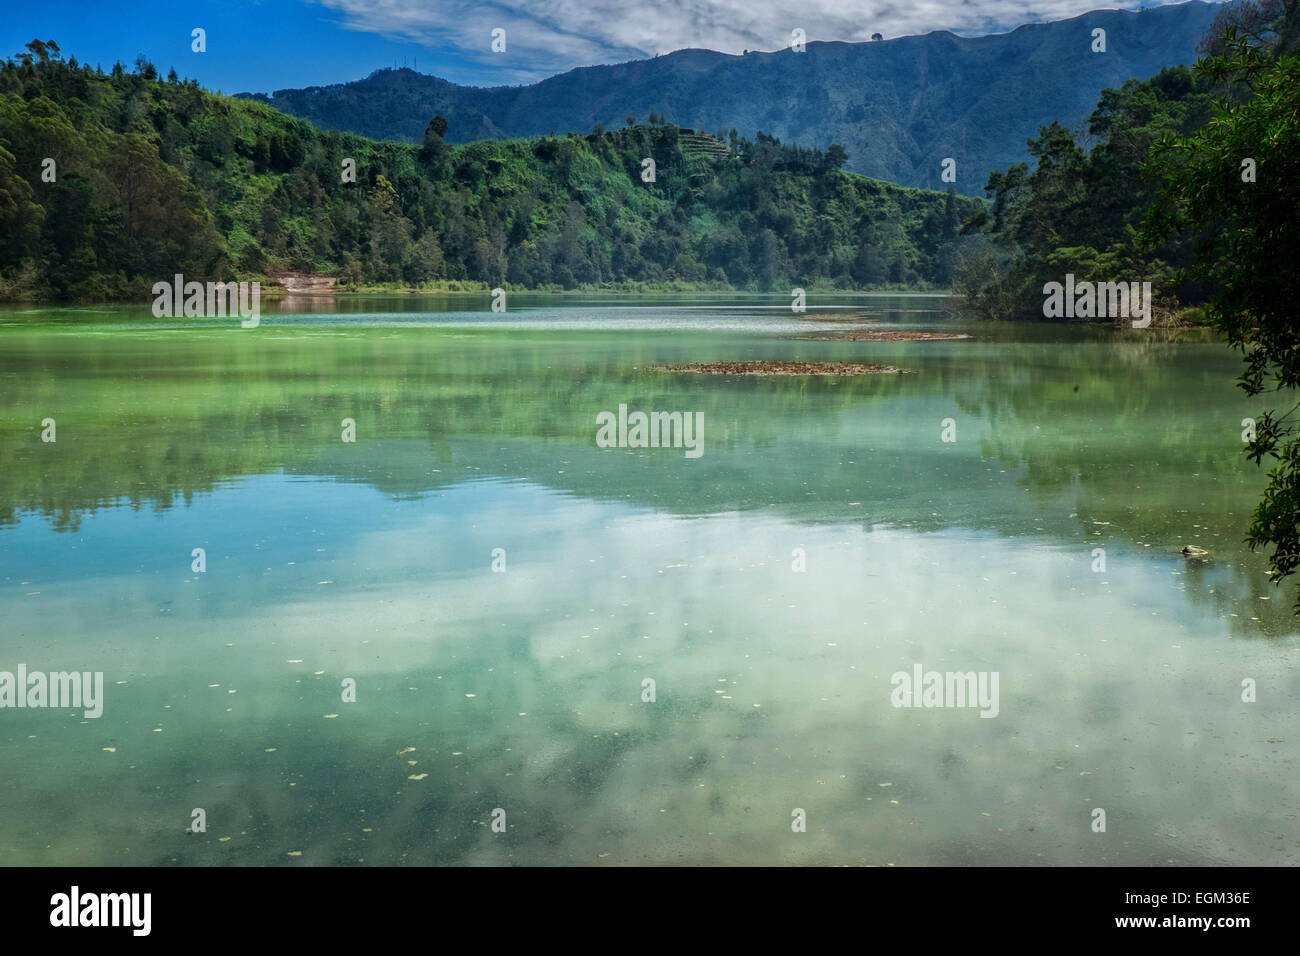 View of volcanic lake in Central Java, Indonesia - Stock Image